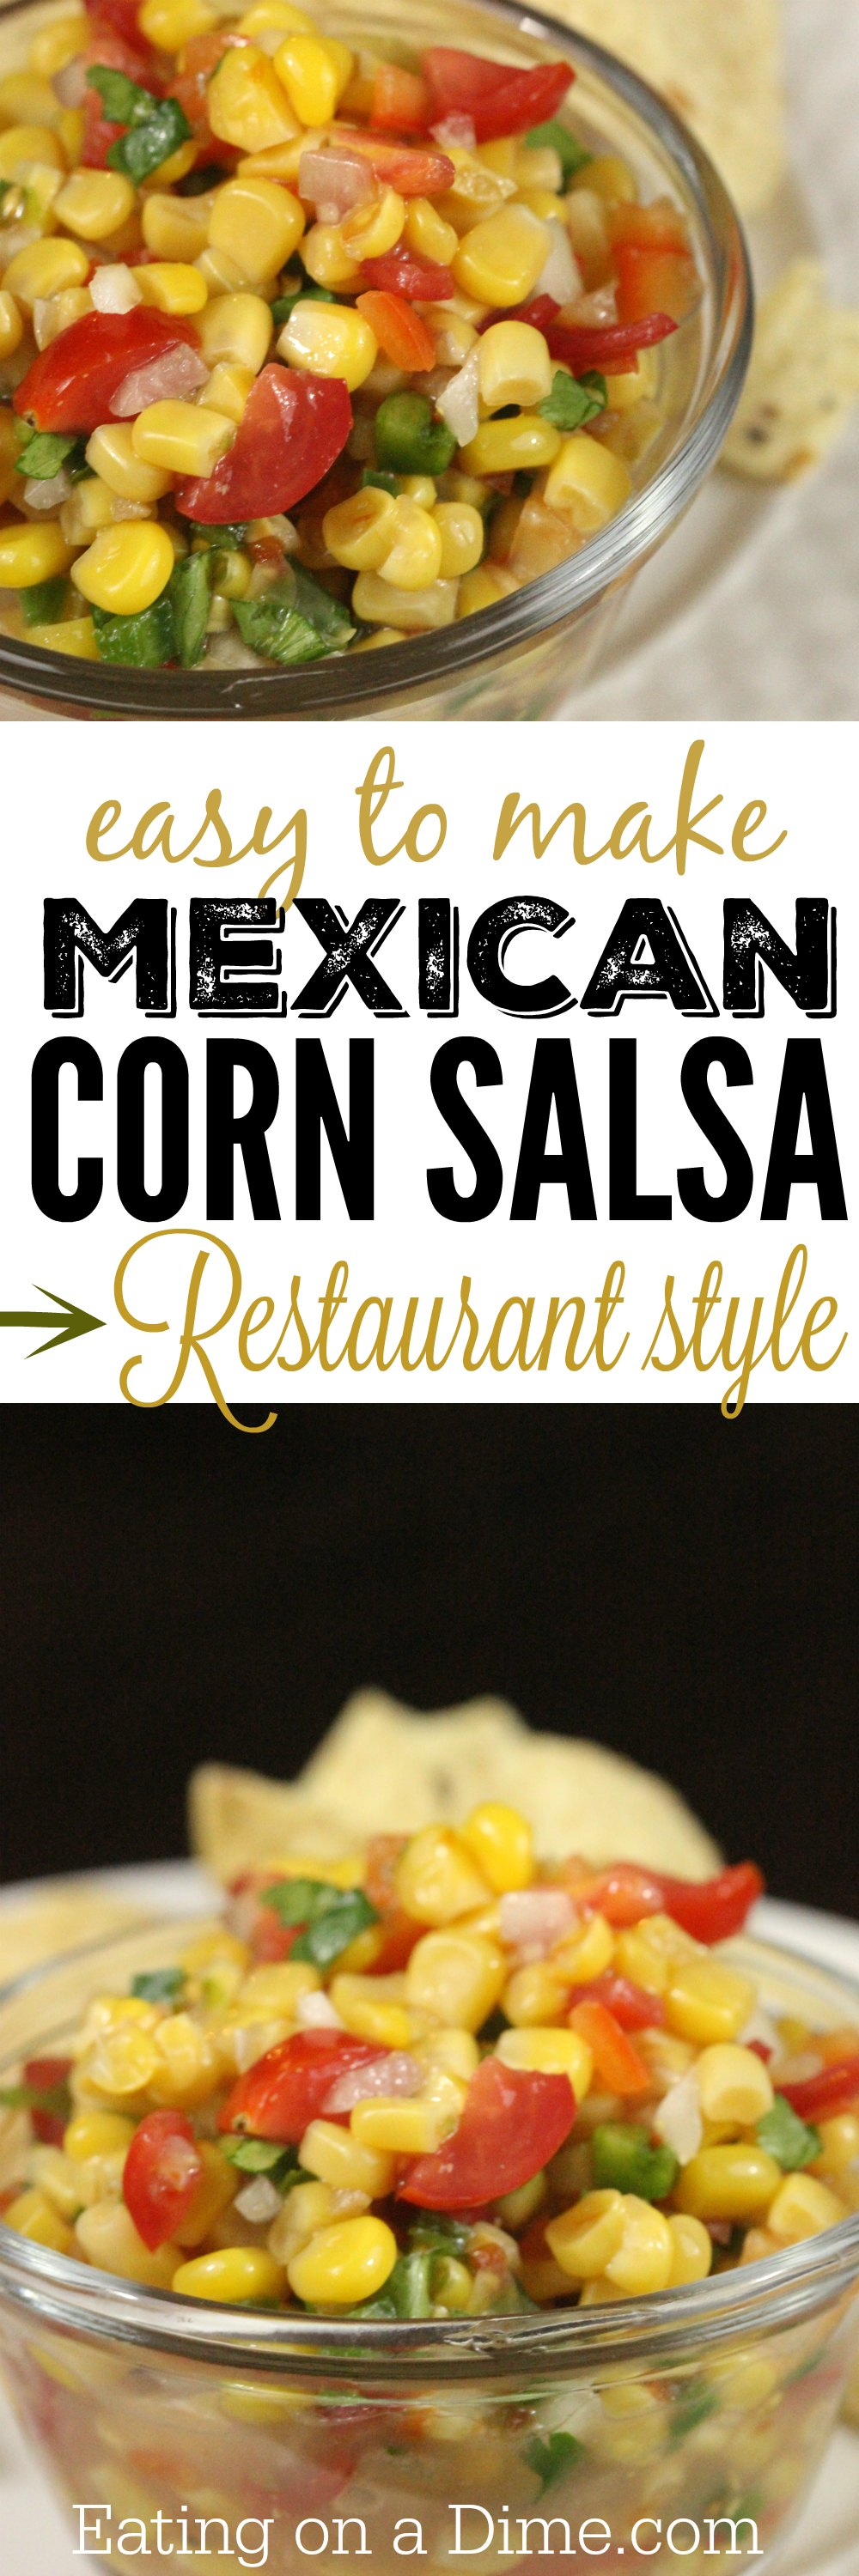 easy to make mexican corn salsa recipe